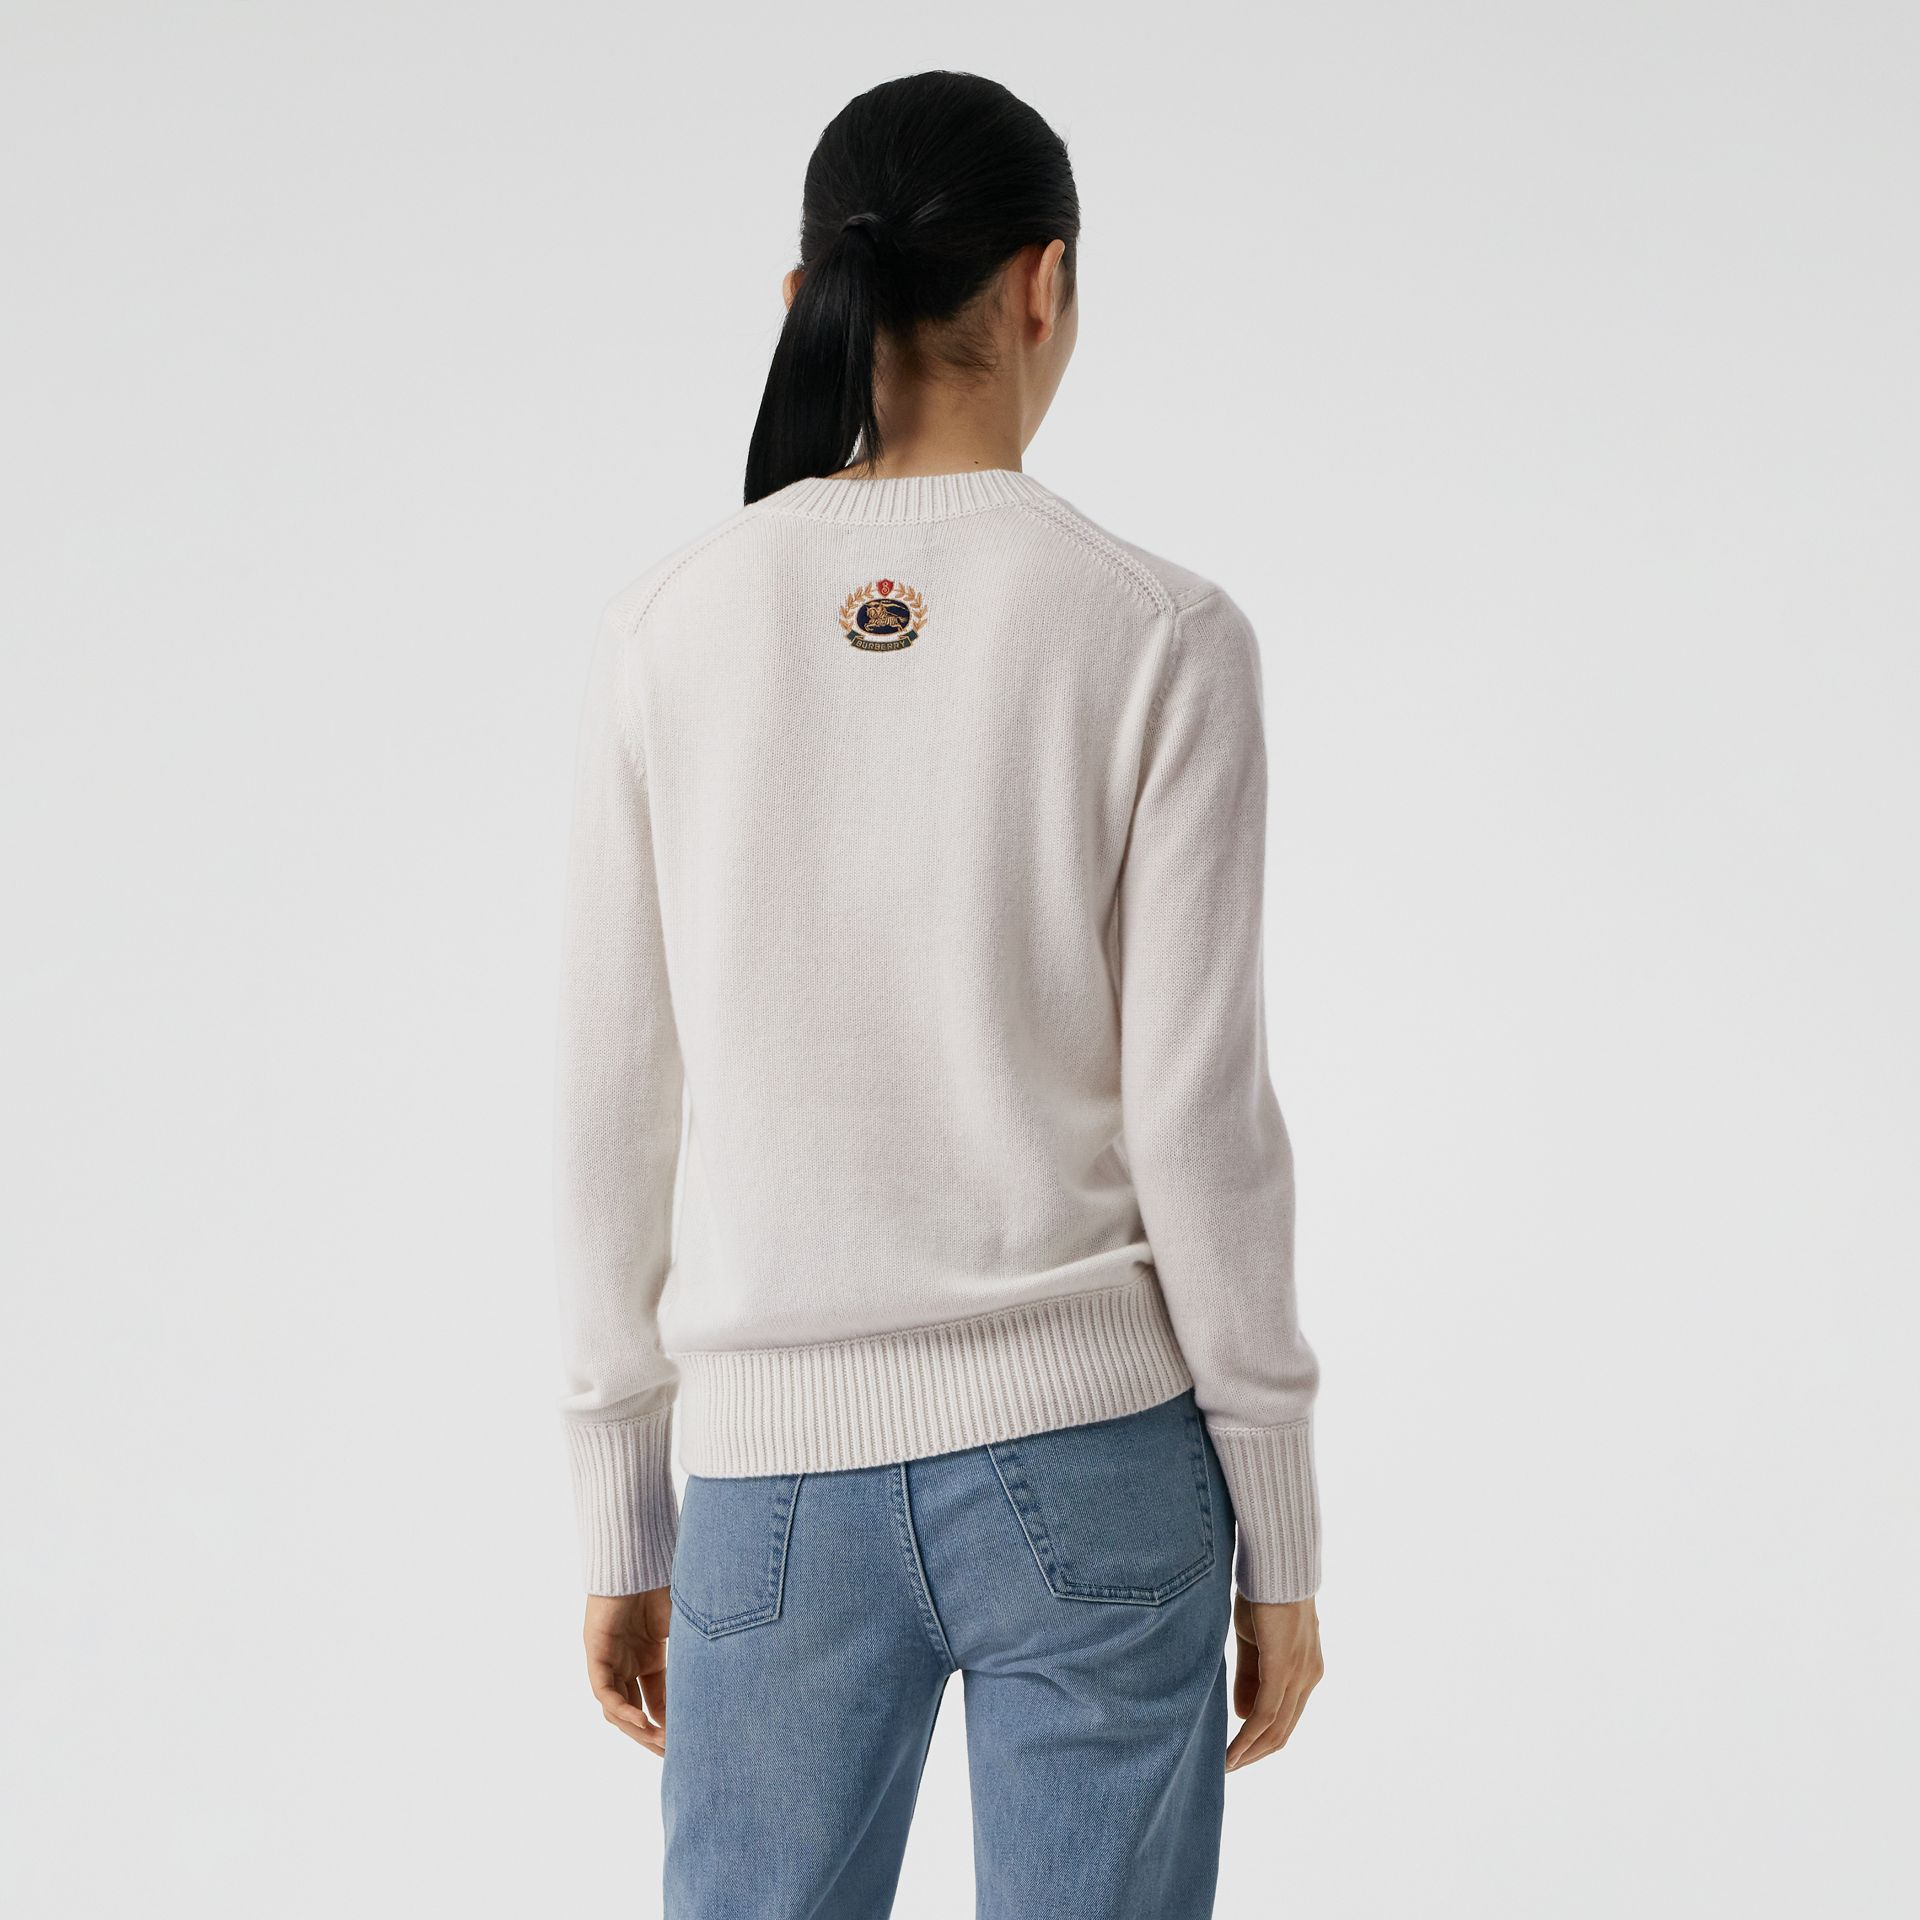 Archive Logo Appliqué Cashmere Sweater in White - Women | Burberry Singapore - gallery image 2